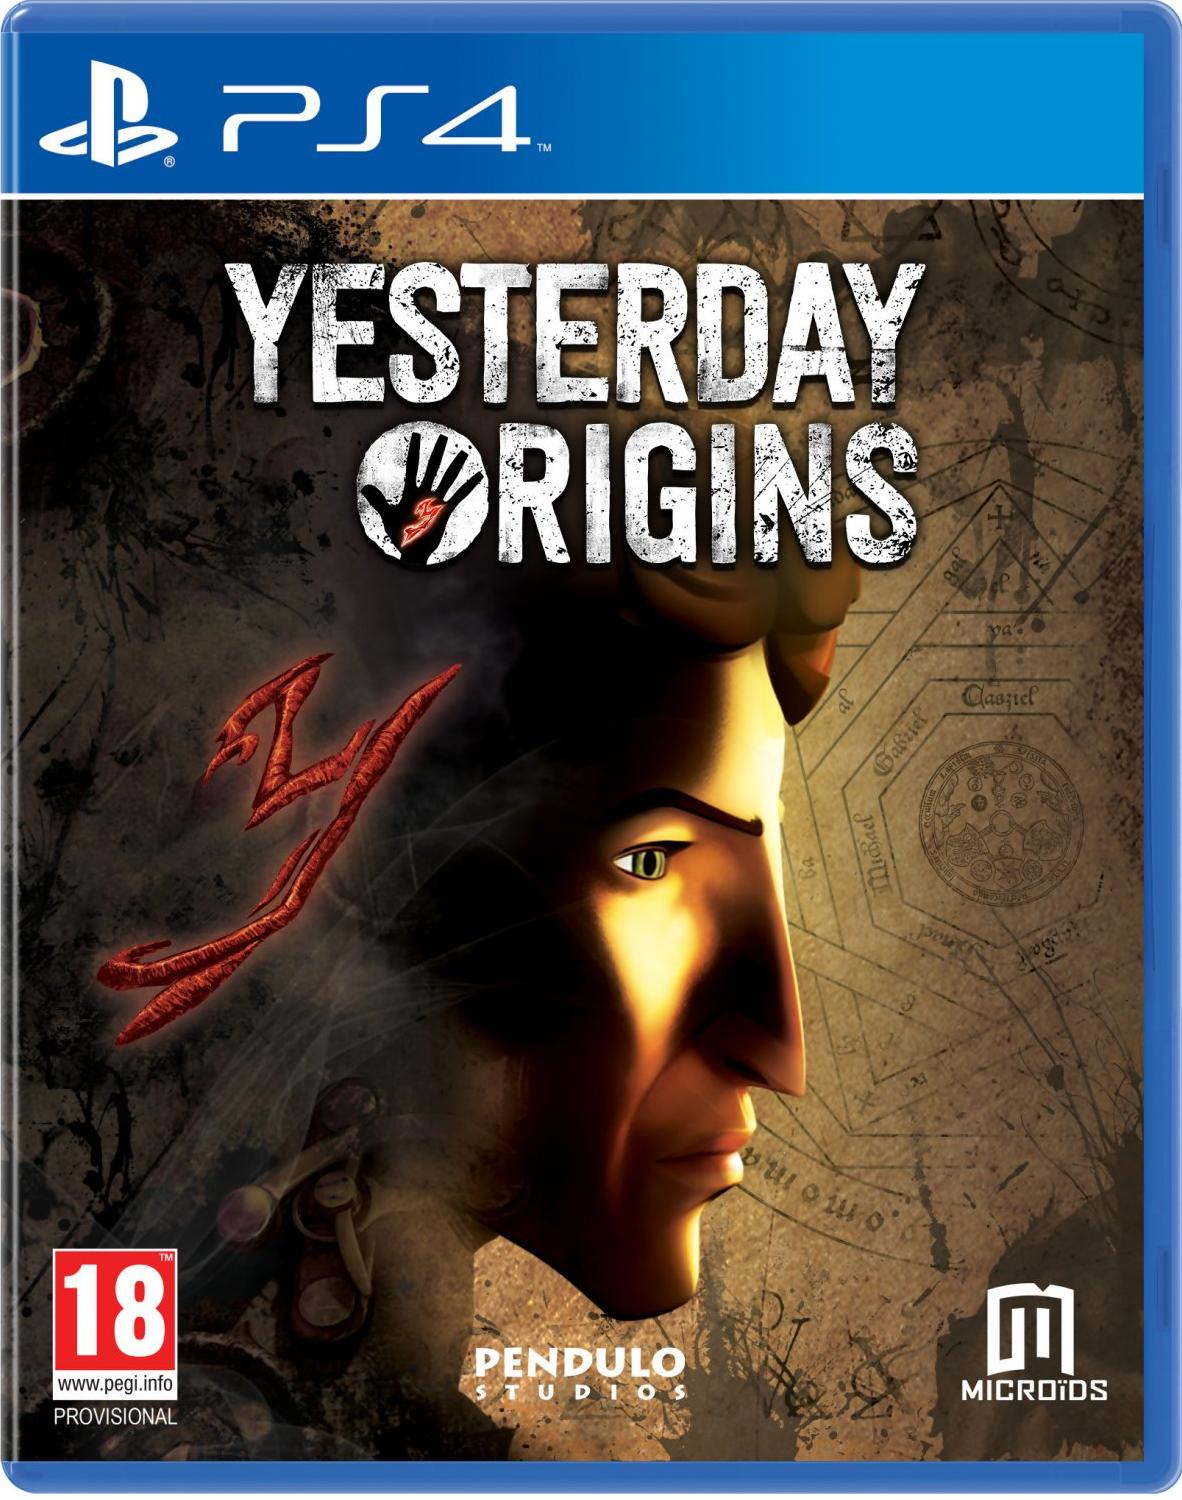 Yesterday Origins (PS4)